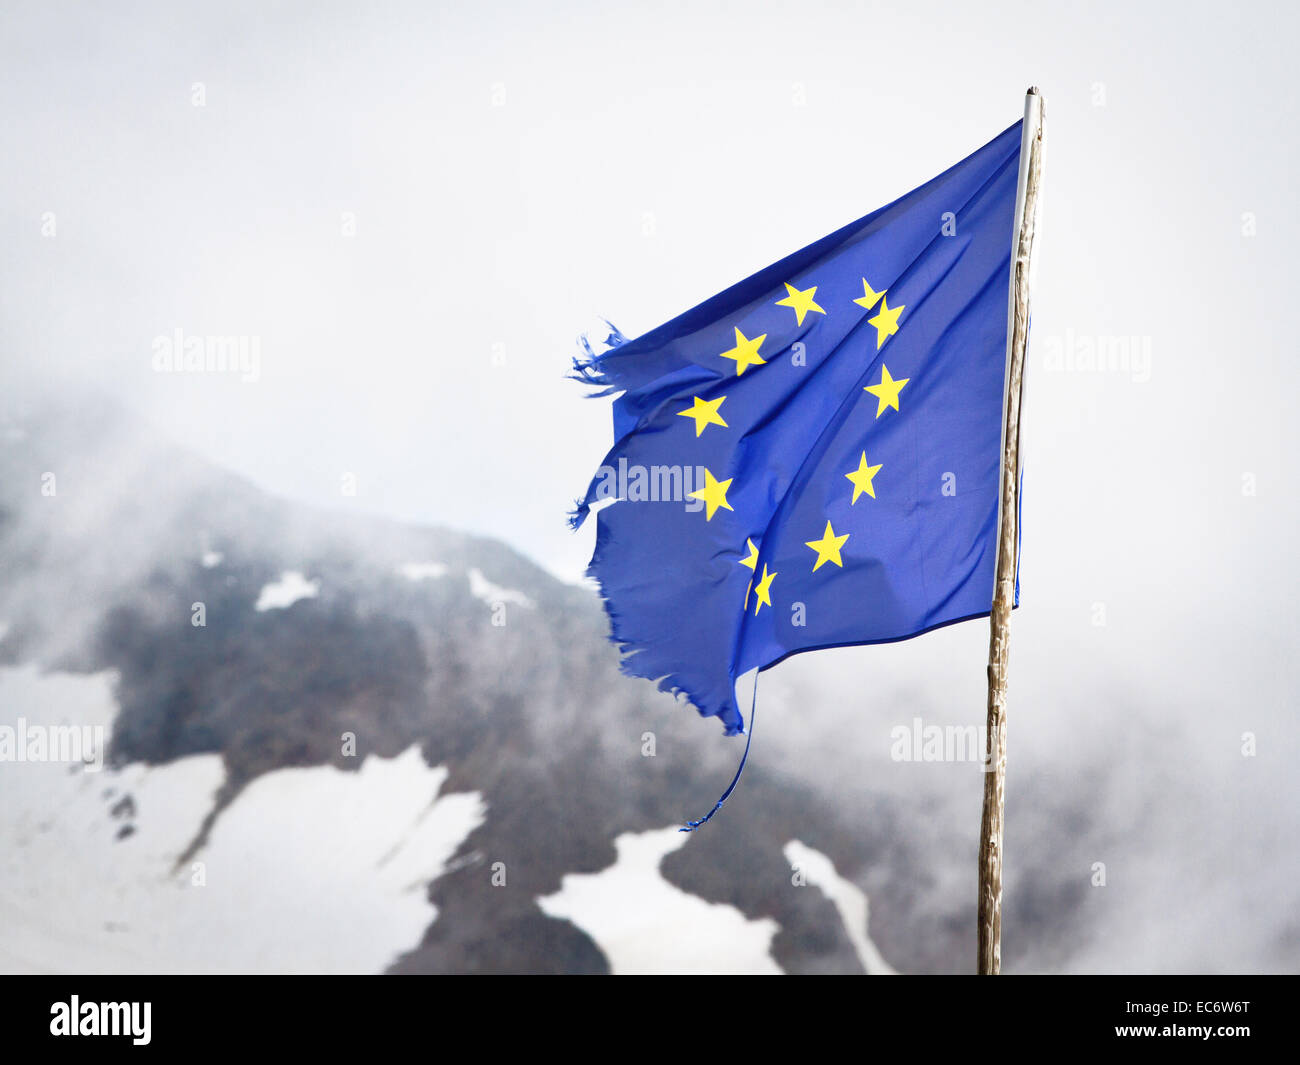 European flag in the Alps, European Union - Stock Image